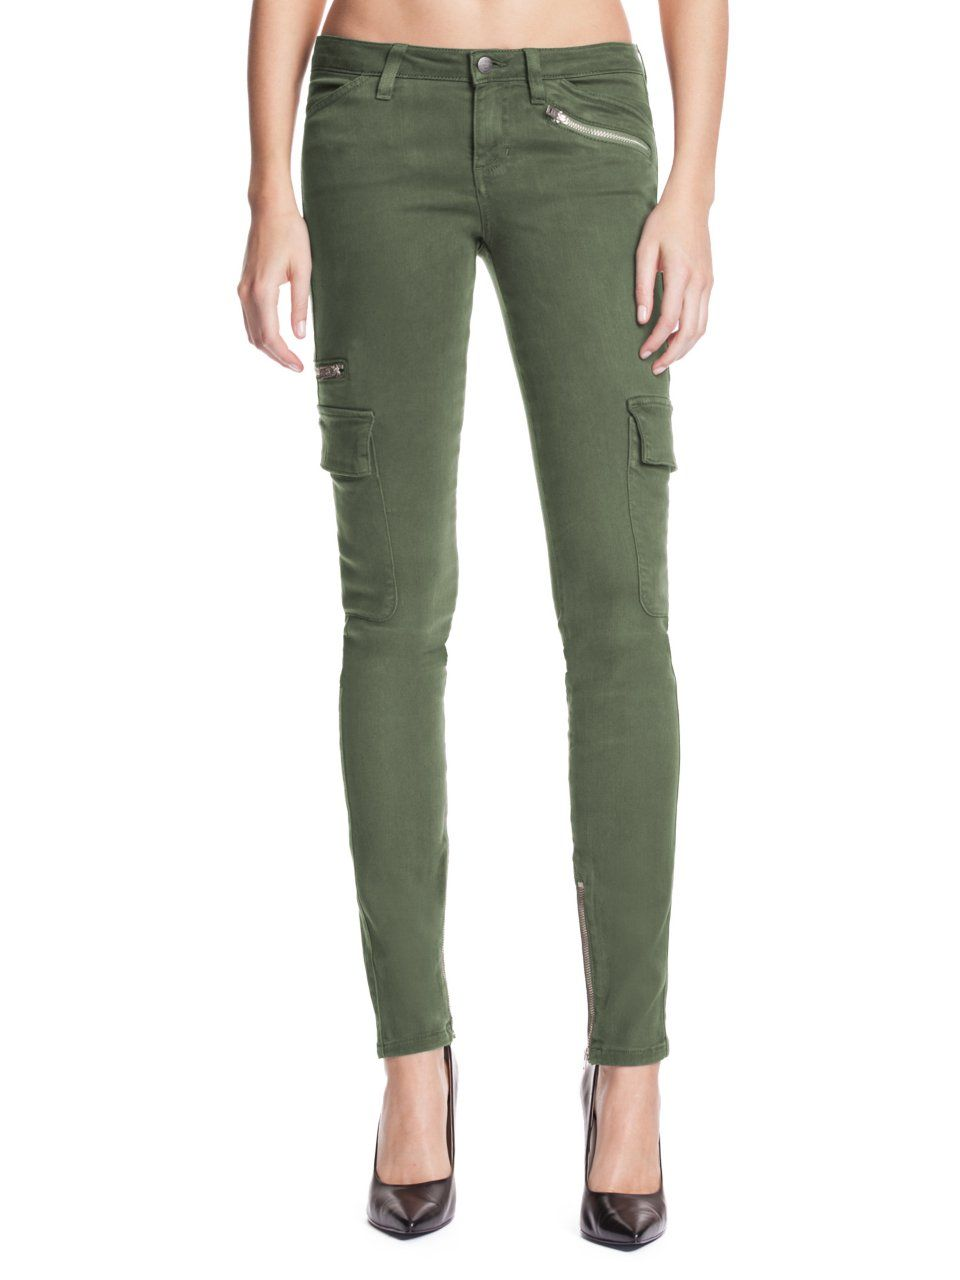 3b55364e GUESS Cargo Skinny Jeans in Washed Dusty Olive, WASHED DUSTY OLIVE (28